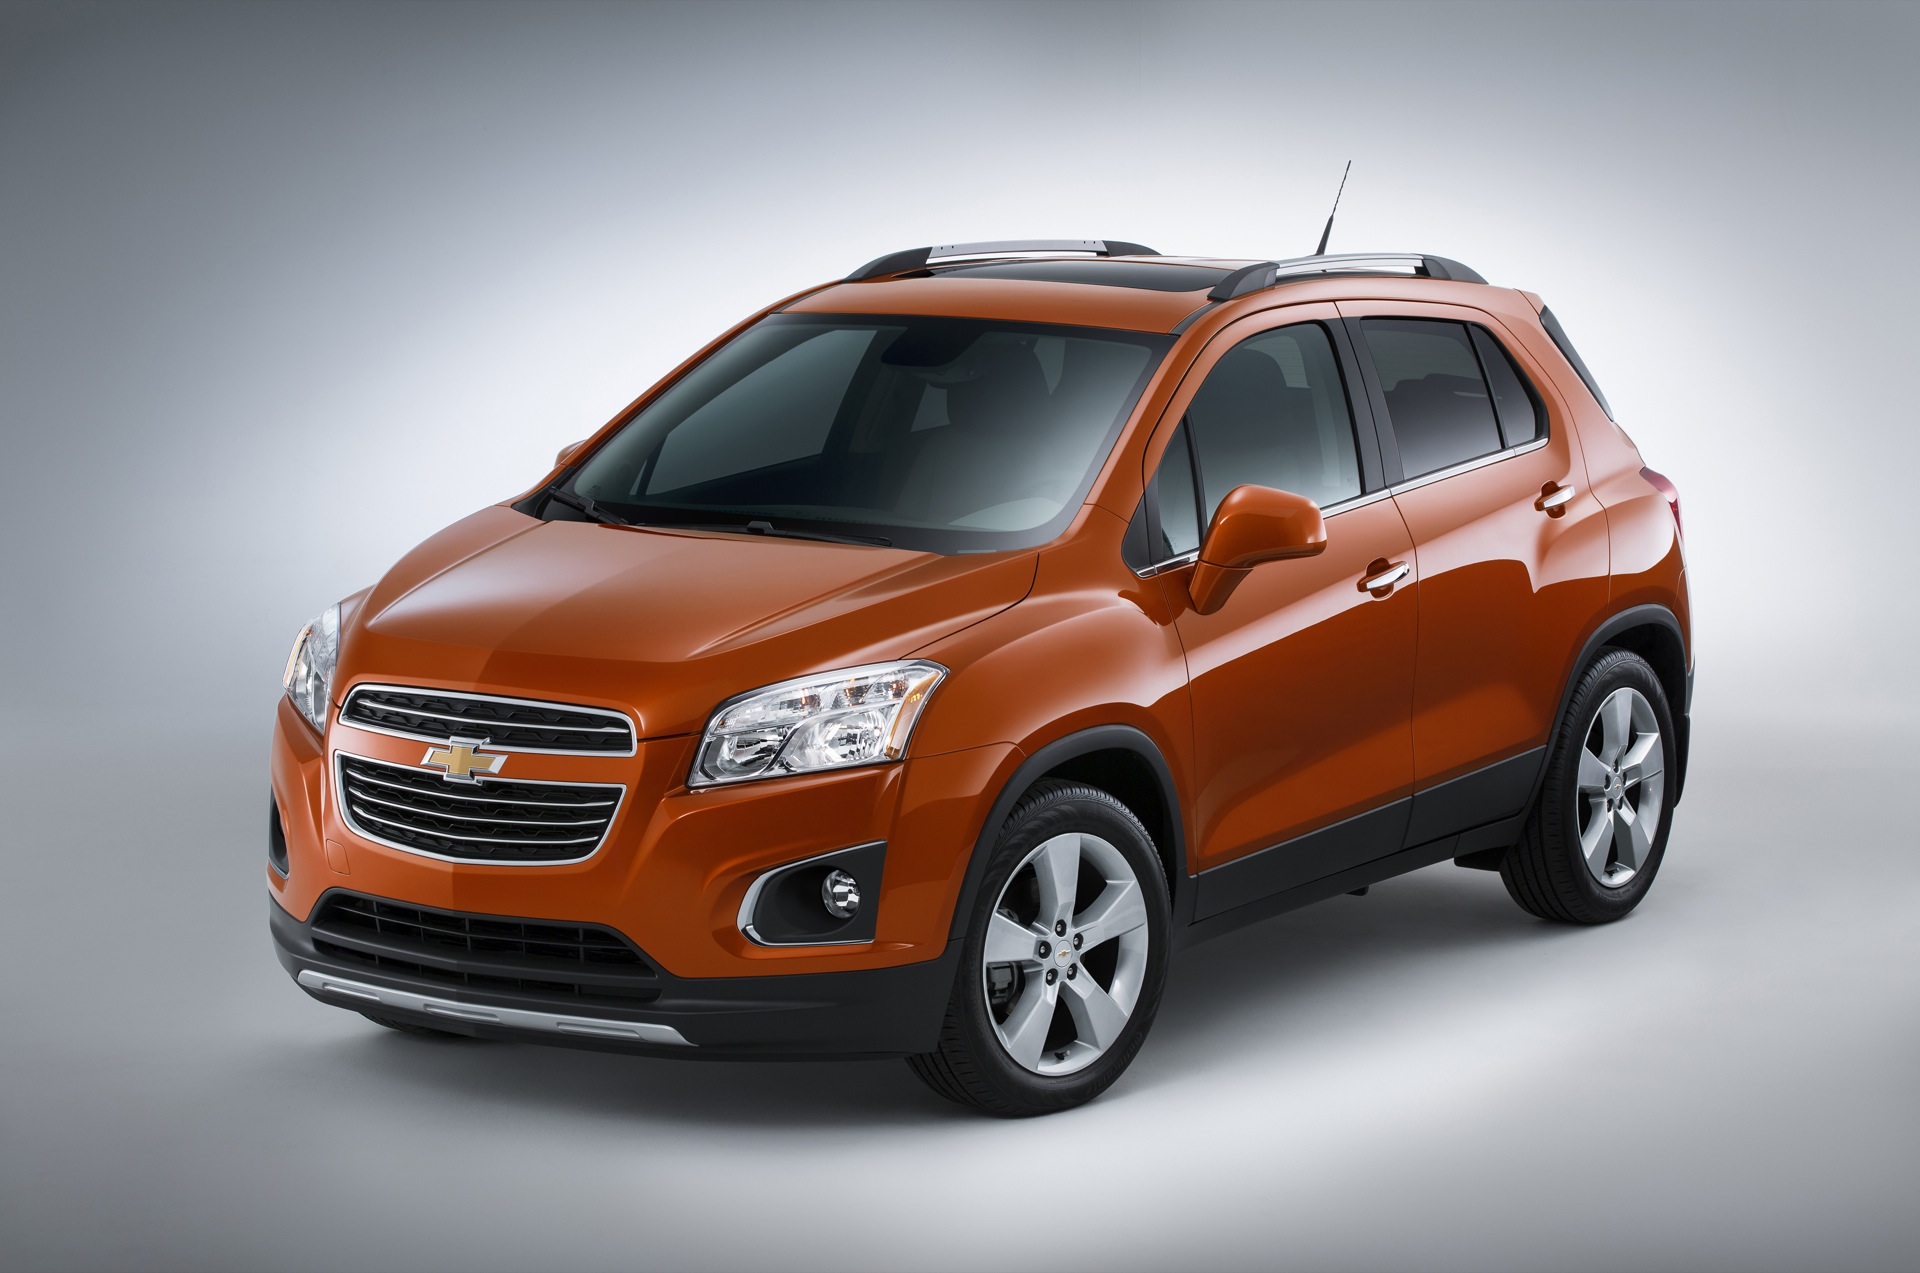 2016 Chevrolet Trax (Chevy) Review, Ratings, Specs, Prices